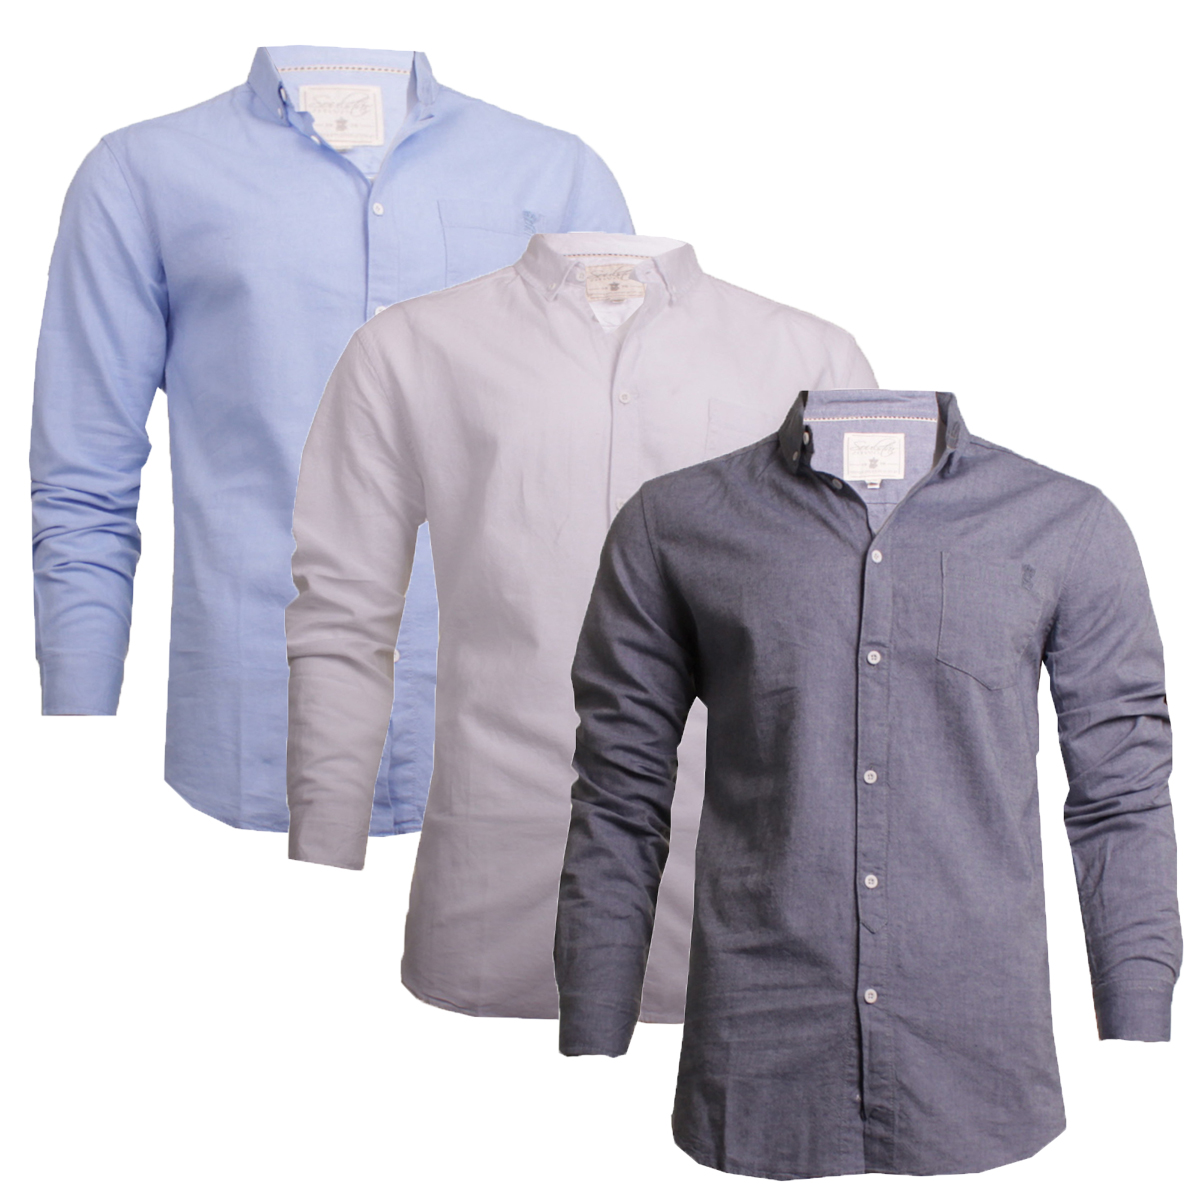 8369c8b4dfd3 Details about Mens Long Sleeve Oxford Summer Casual Shirt By Soul Star